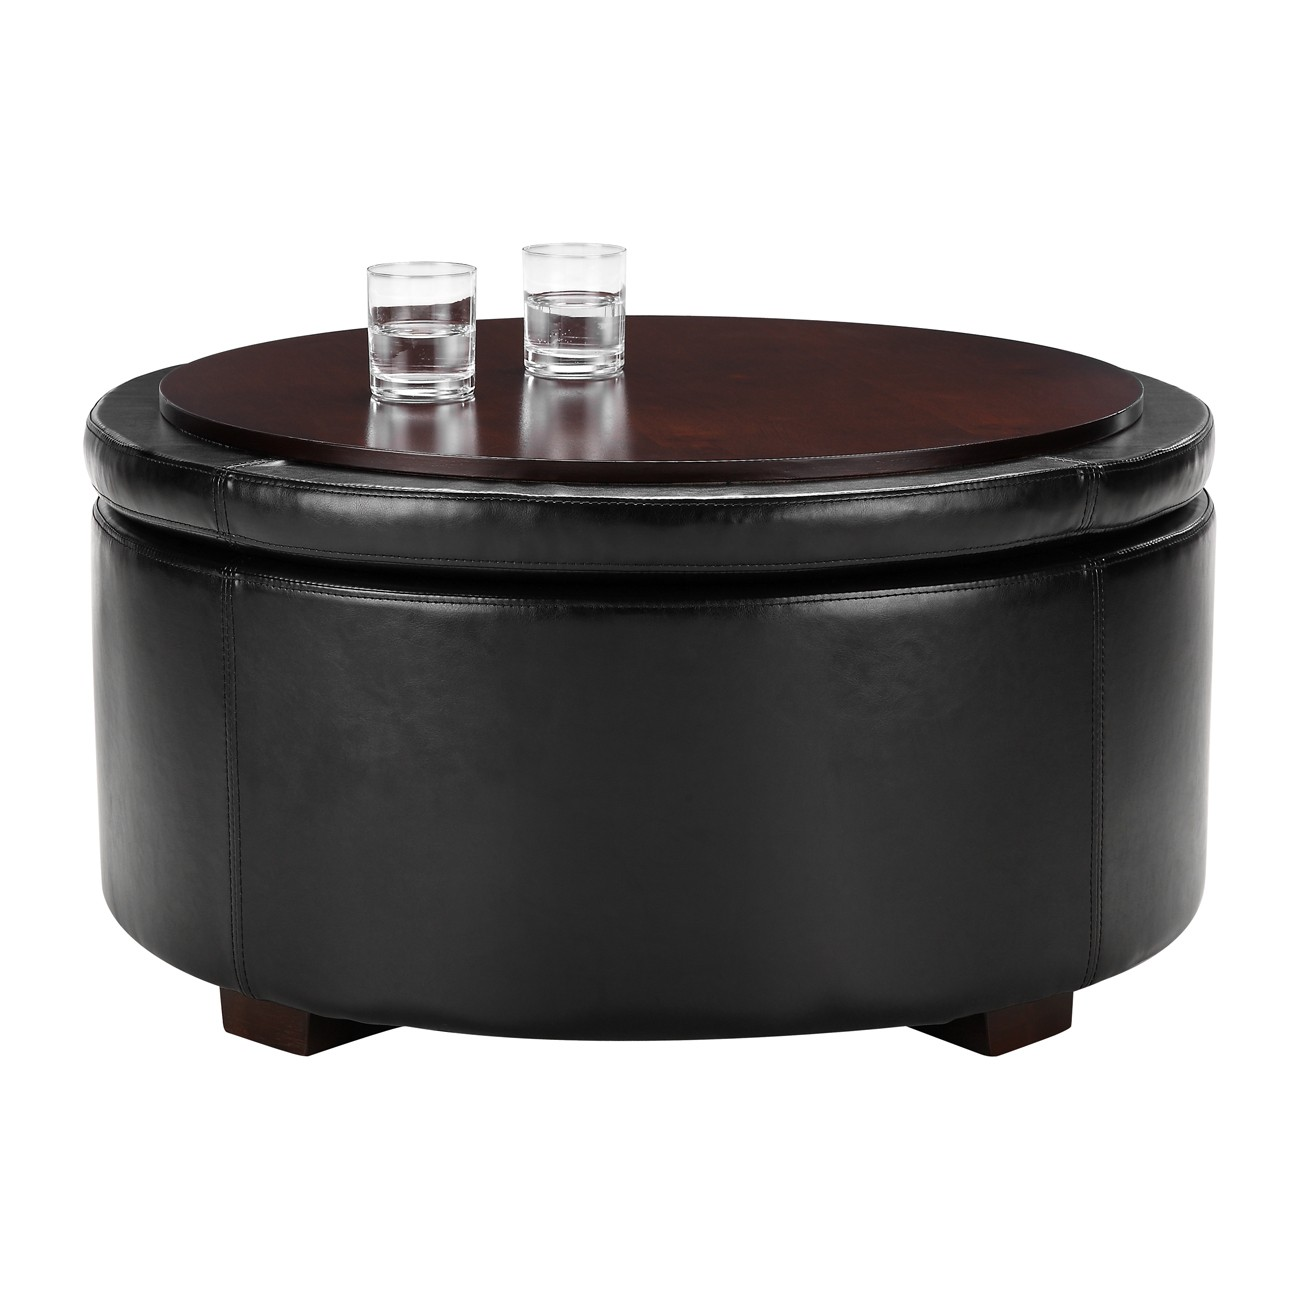 round flat brown wooden large ottoman tray on black leather ottoman for home furniture ideas